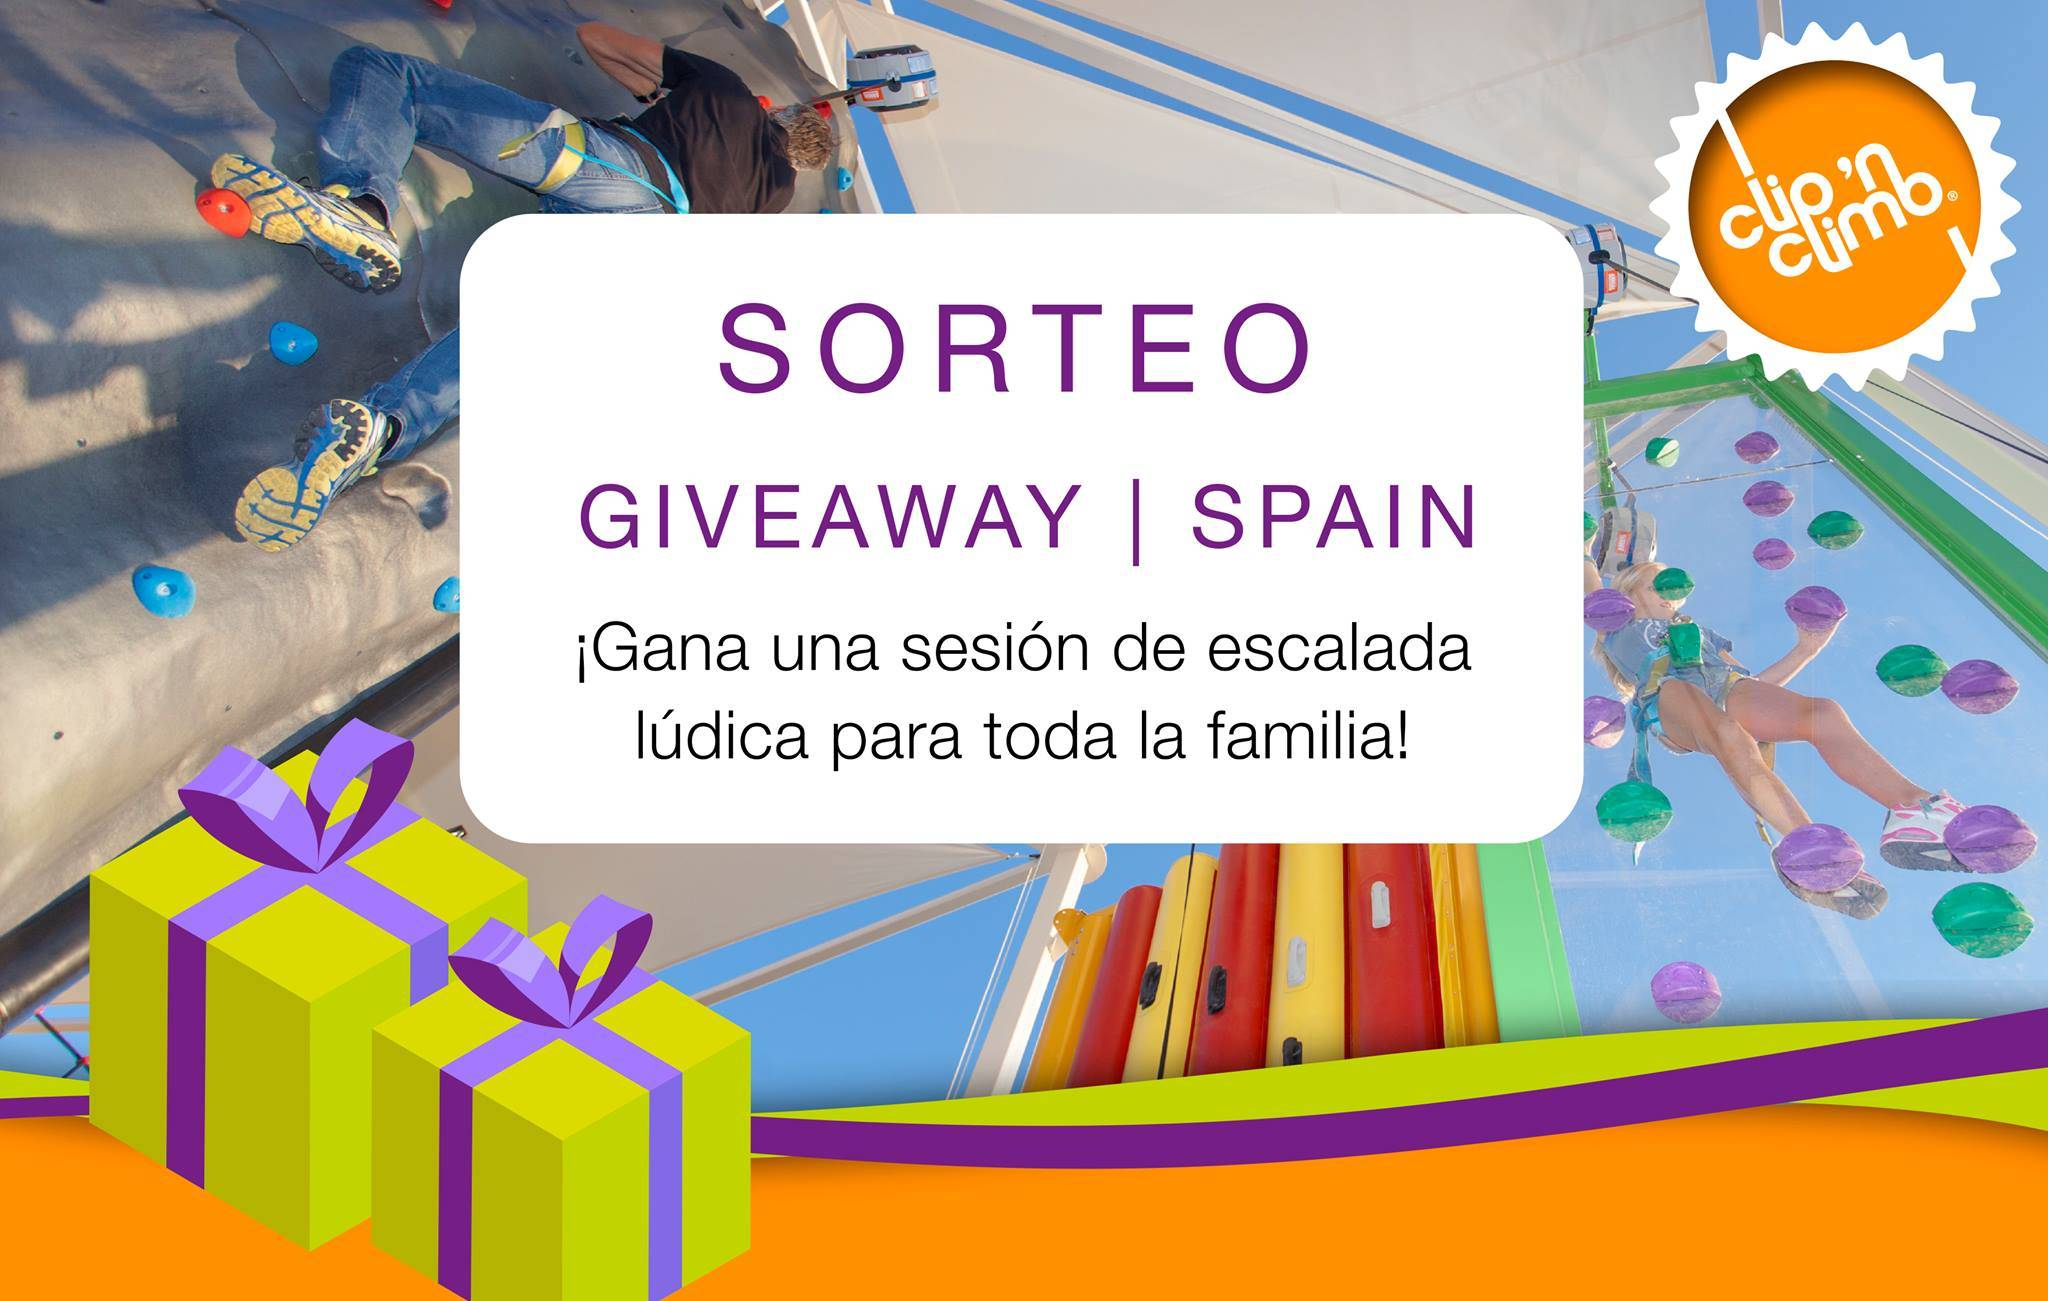 Spanish Clip 'n Climb centres join together to create a global giveaway on Facebook